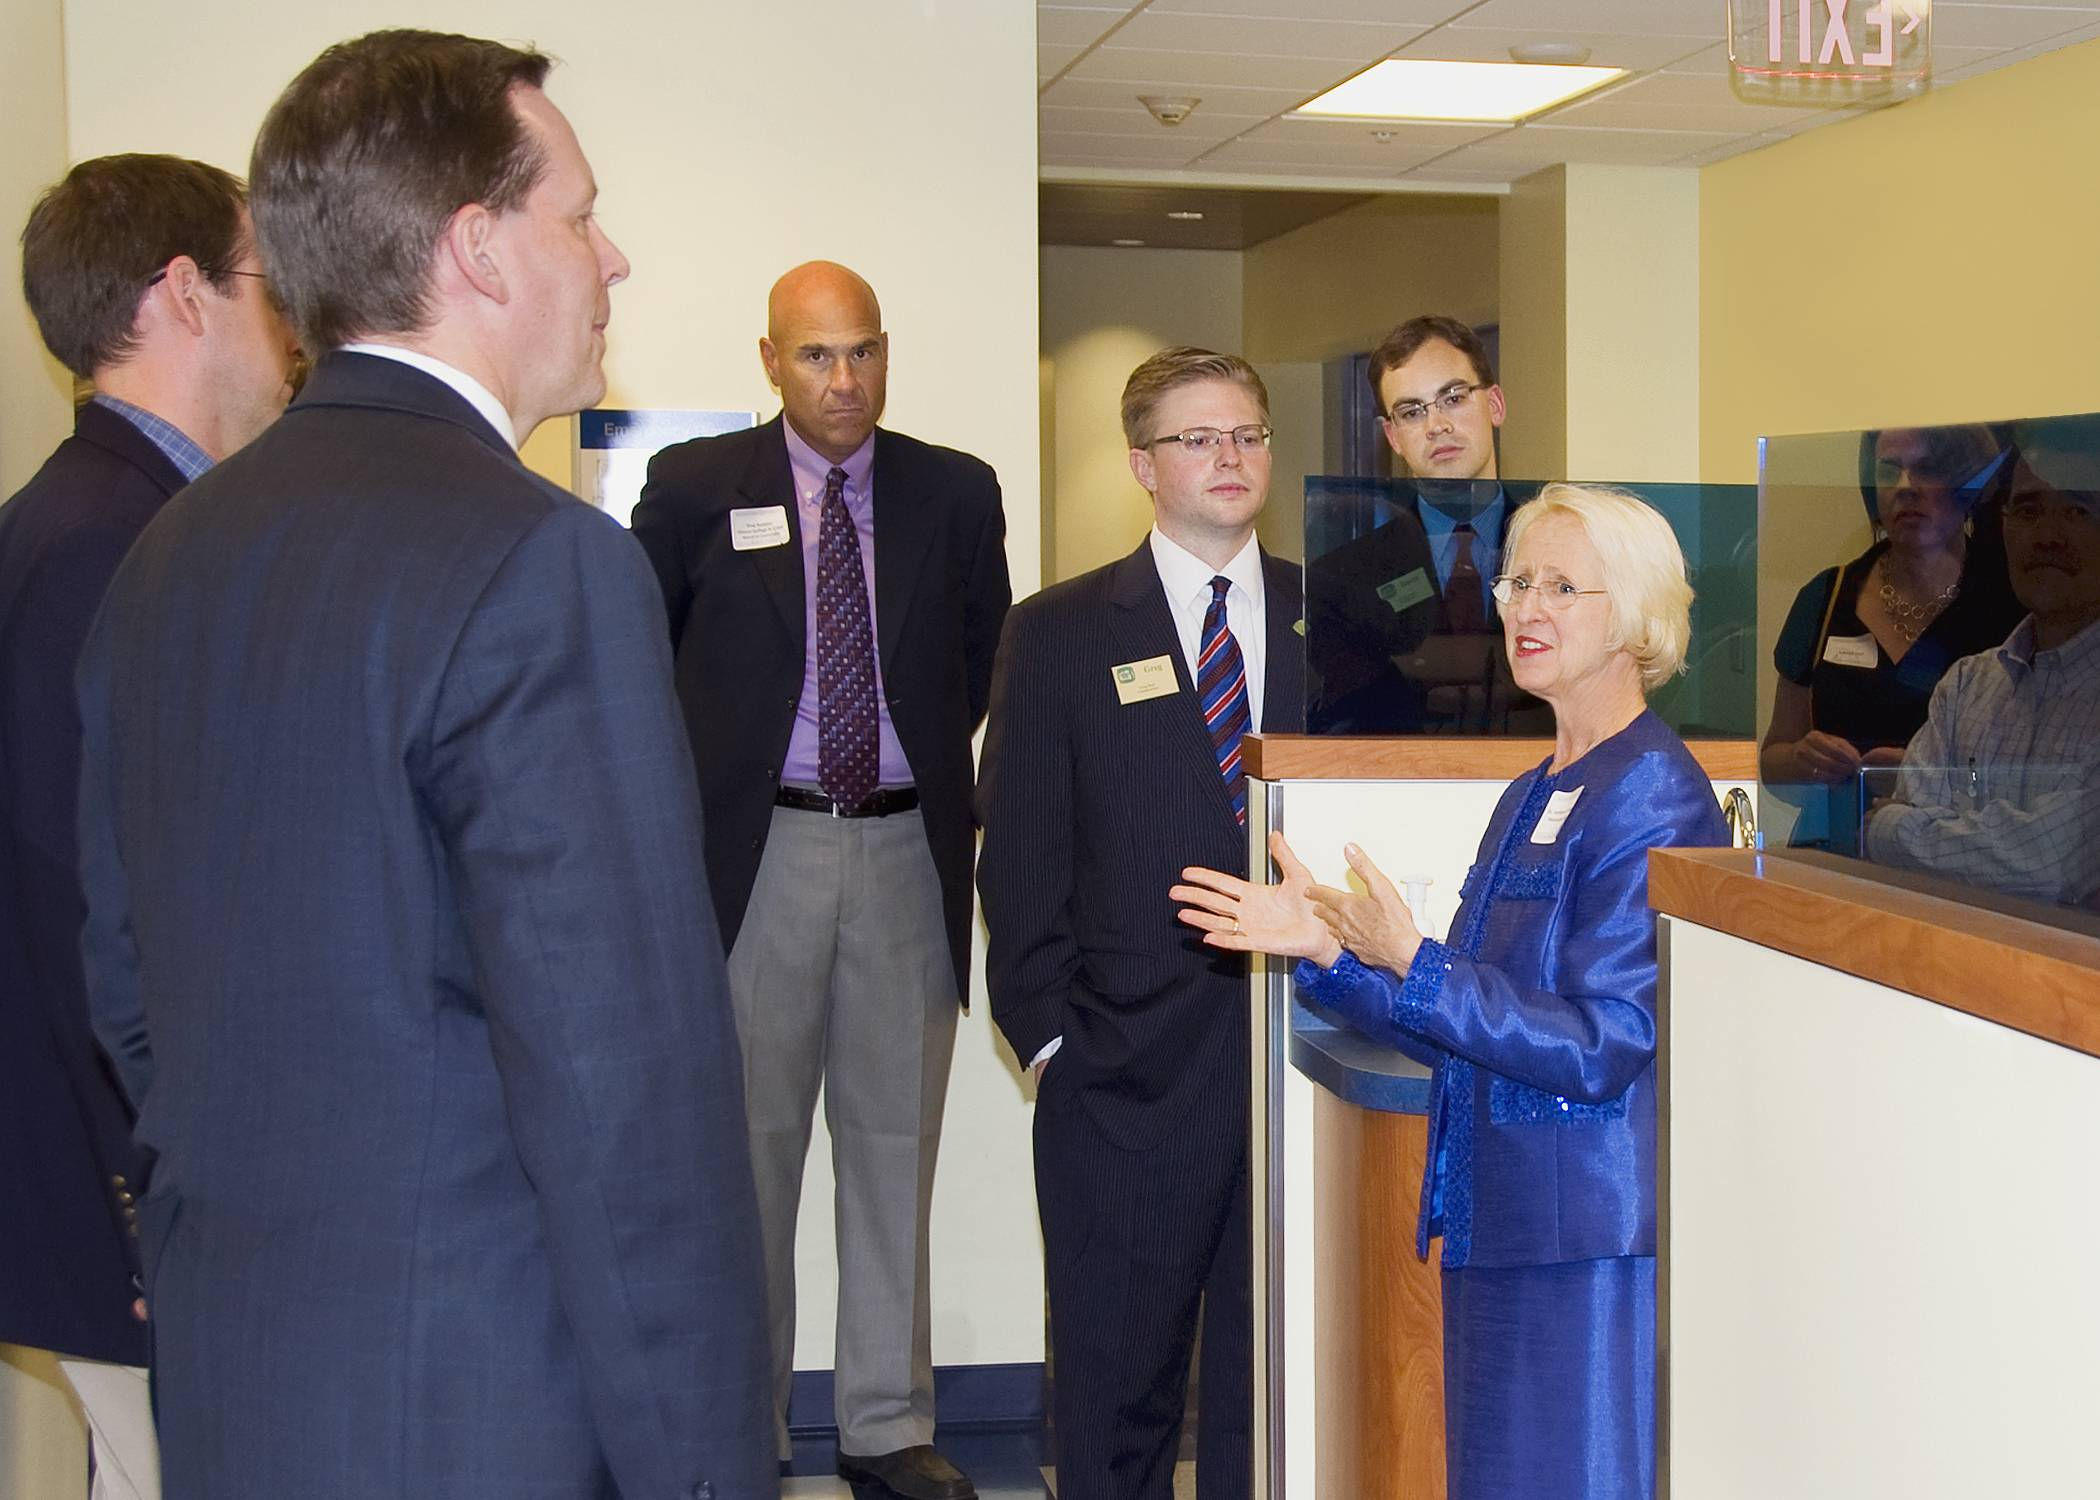 Kathleen H. Goeppinger, Ph.D., President and Chief Executive Officer of Midwestern University, leads a tour of the new Dental Institute at Midwestern University's Multispecialty Clinic.